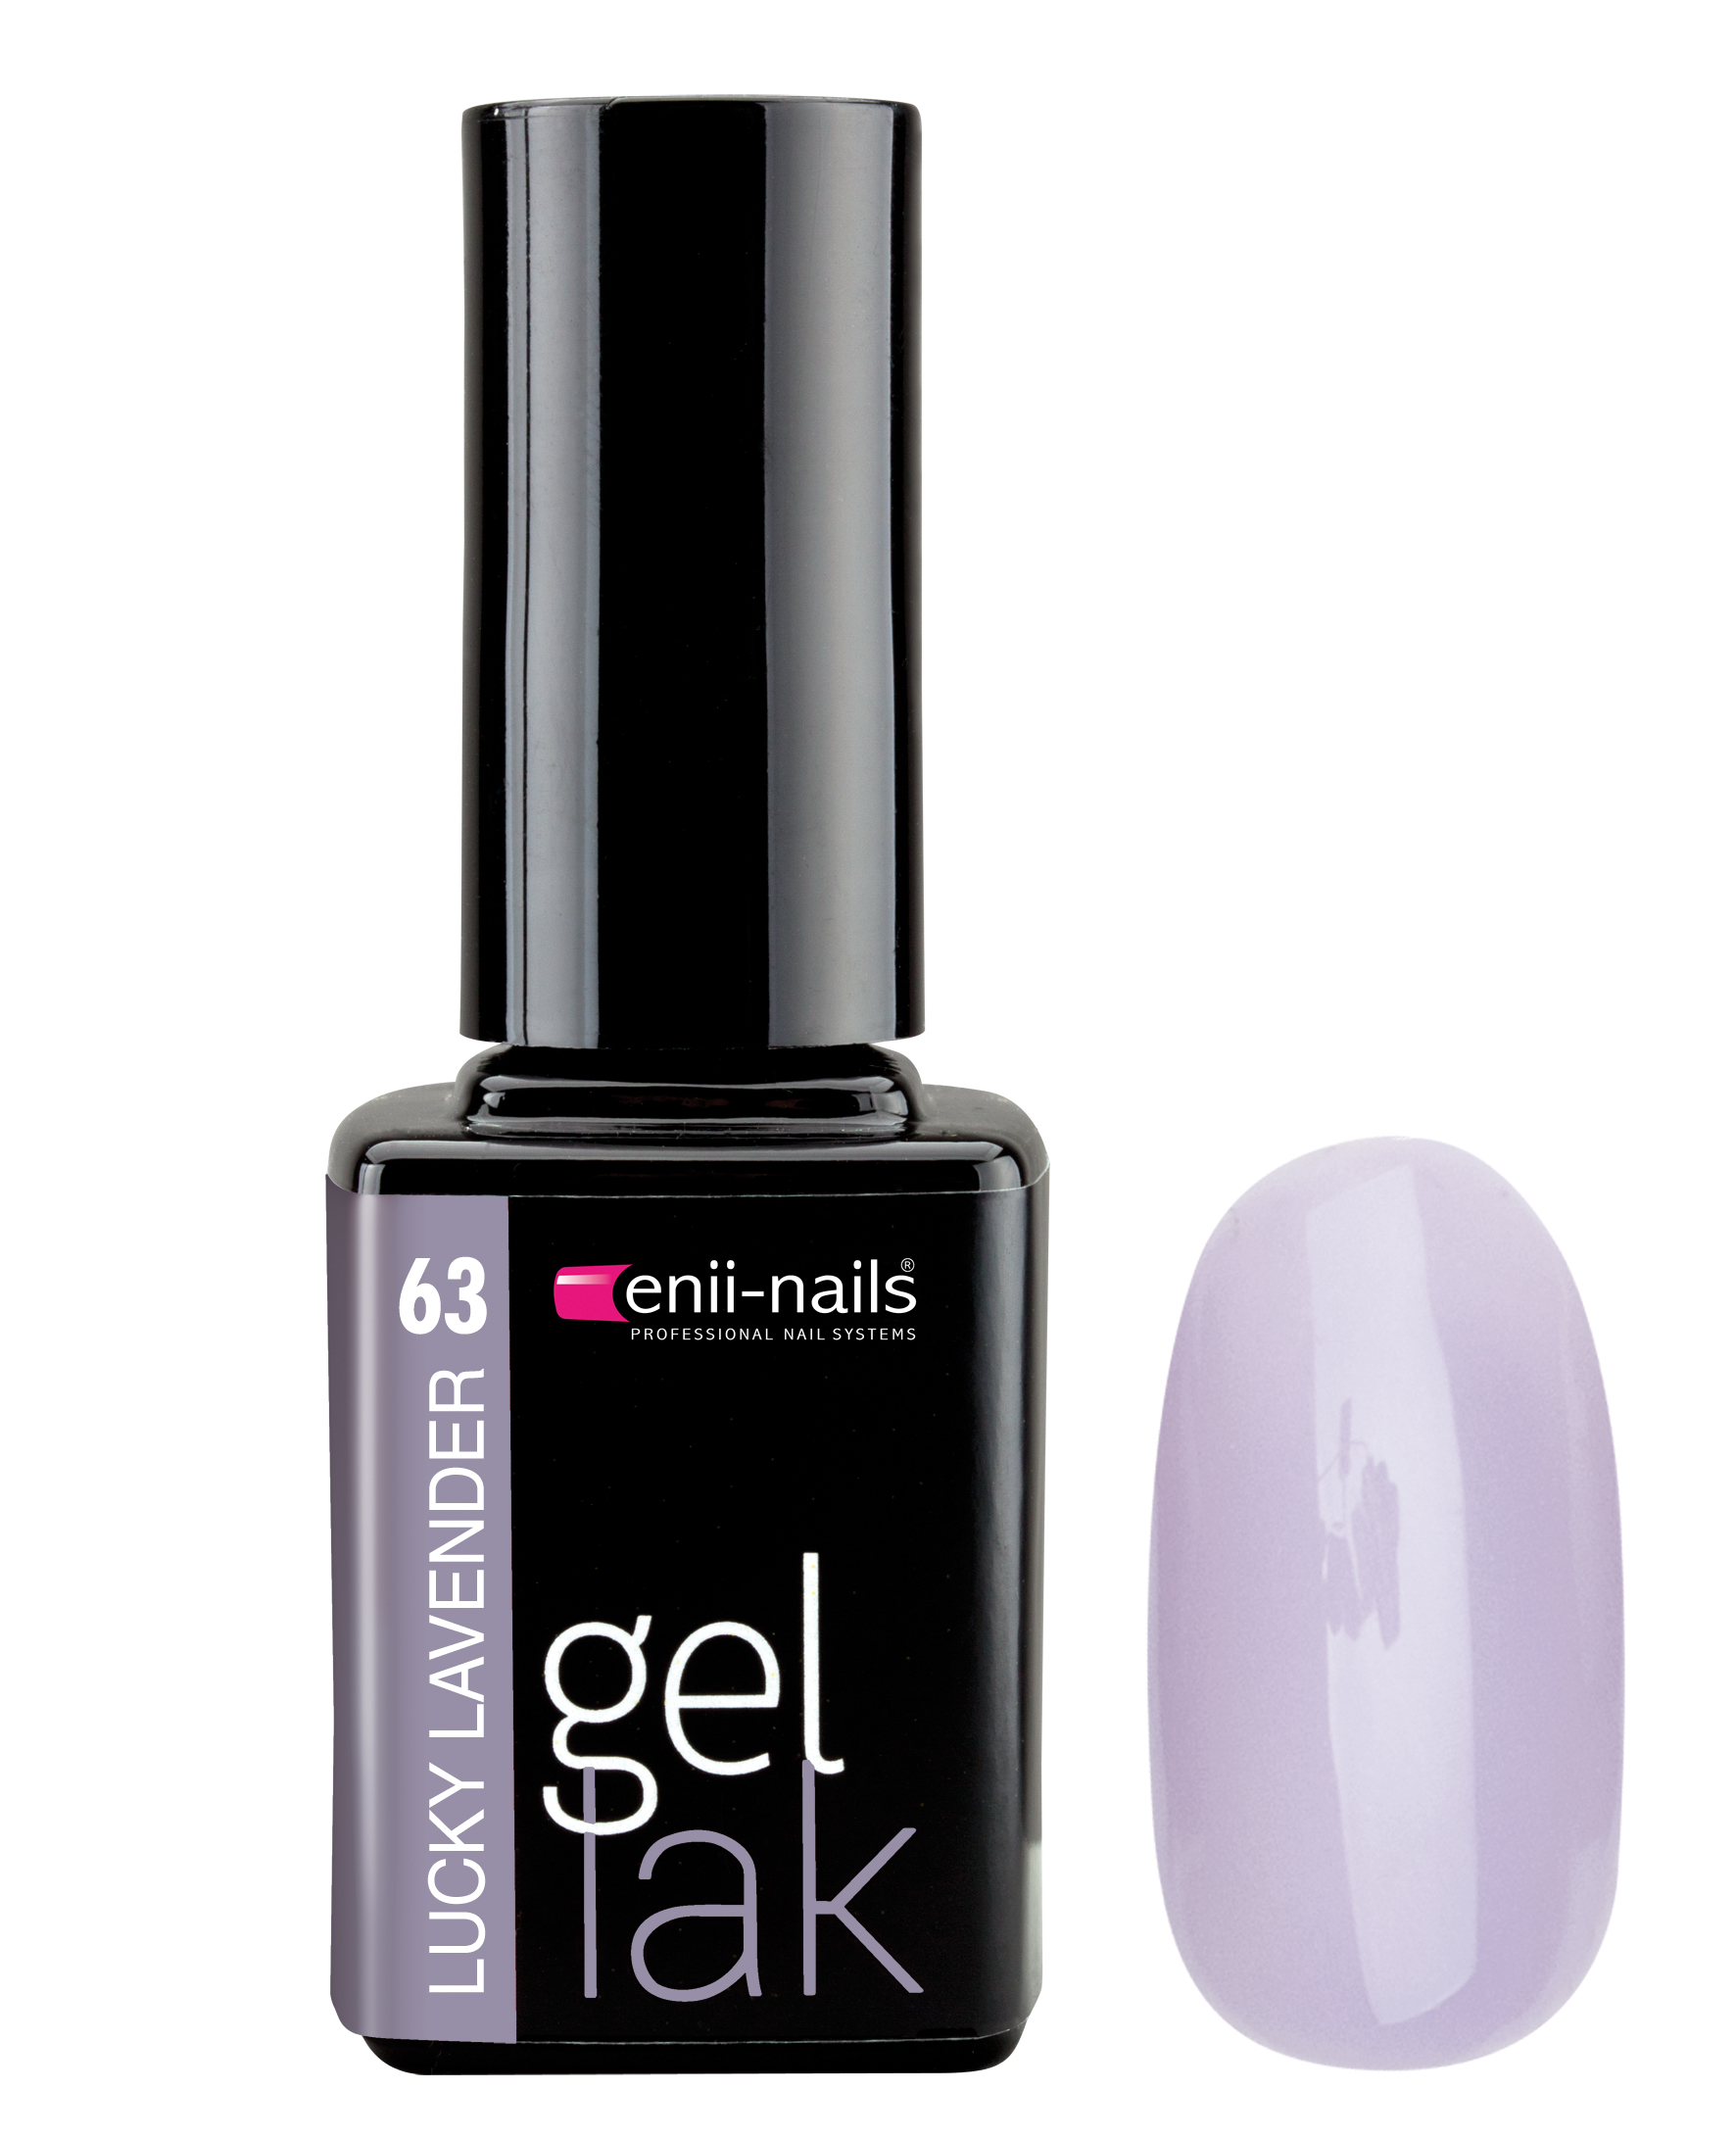 ENII-NAILS Gel lak 11 ml - Lucky lavender